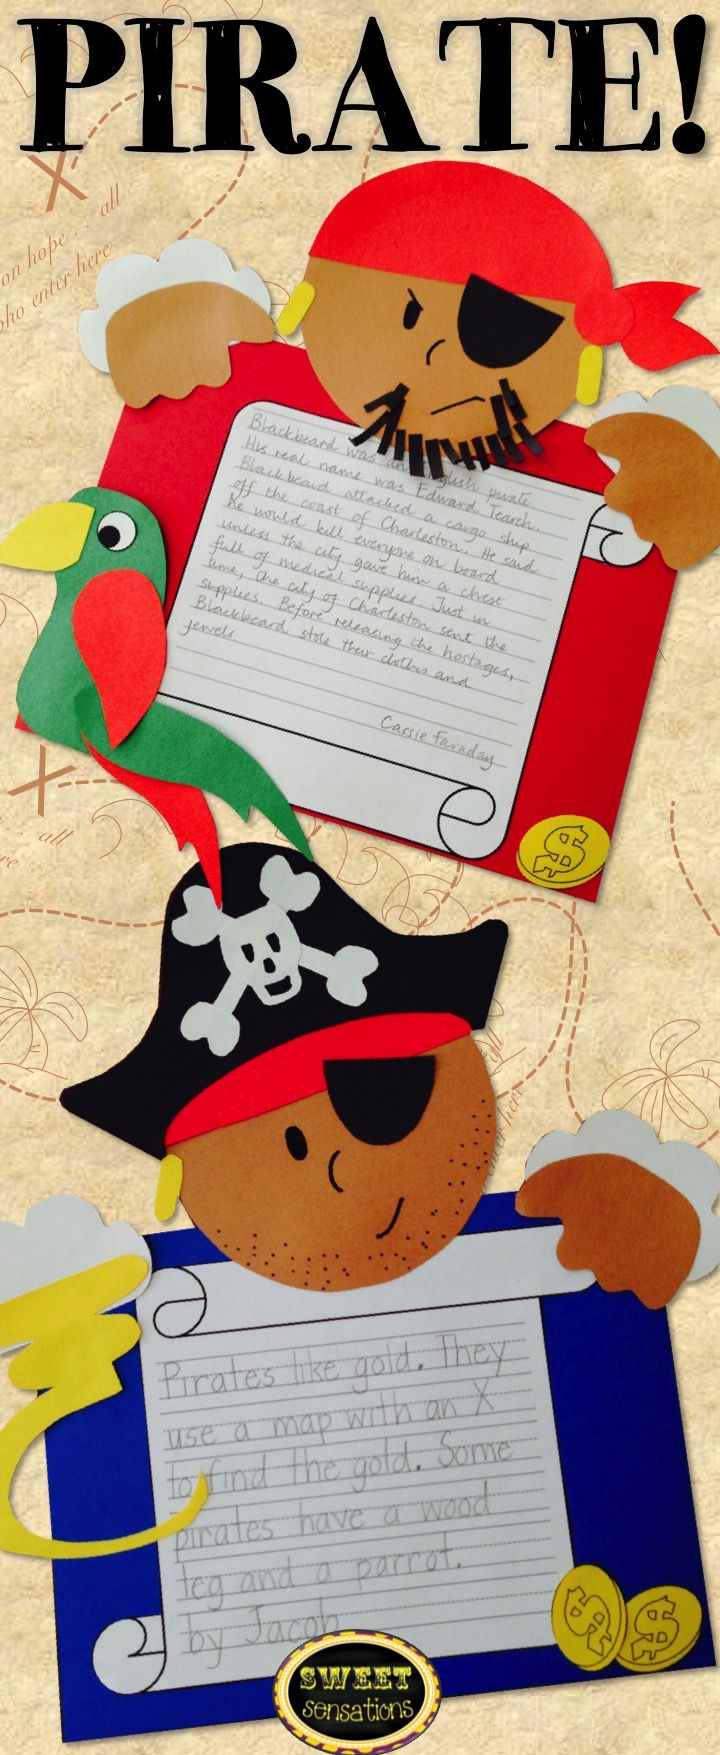 LOVE LOVE LOVE this!!  Going to use it for my ocean theme - each pirate can look different and can draw a treasure map and write directions on how to find the gold!